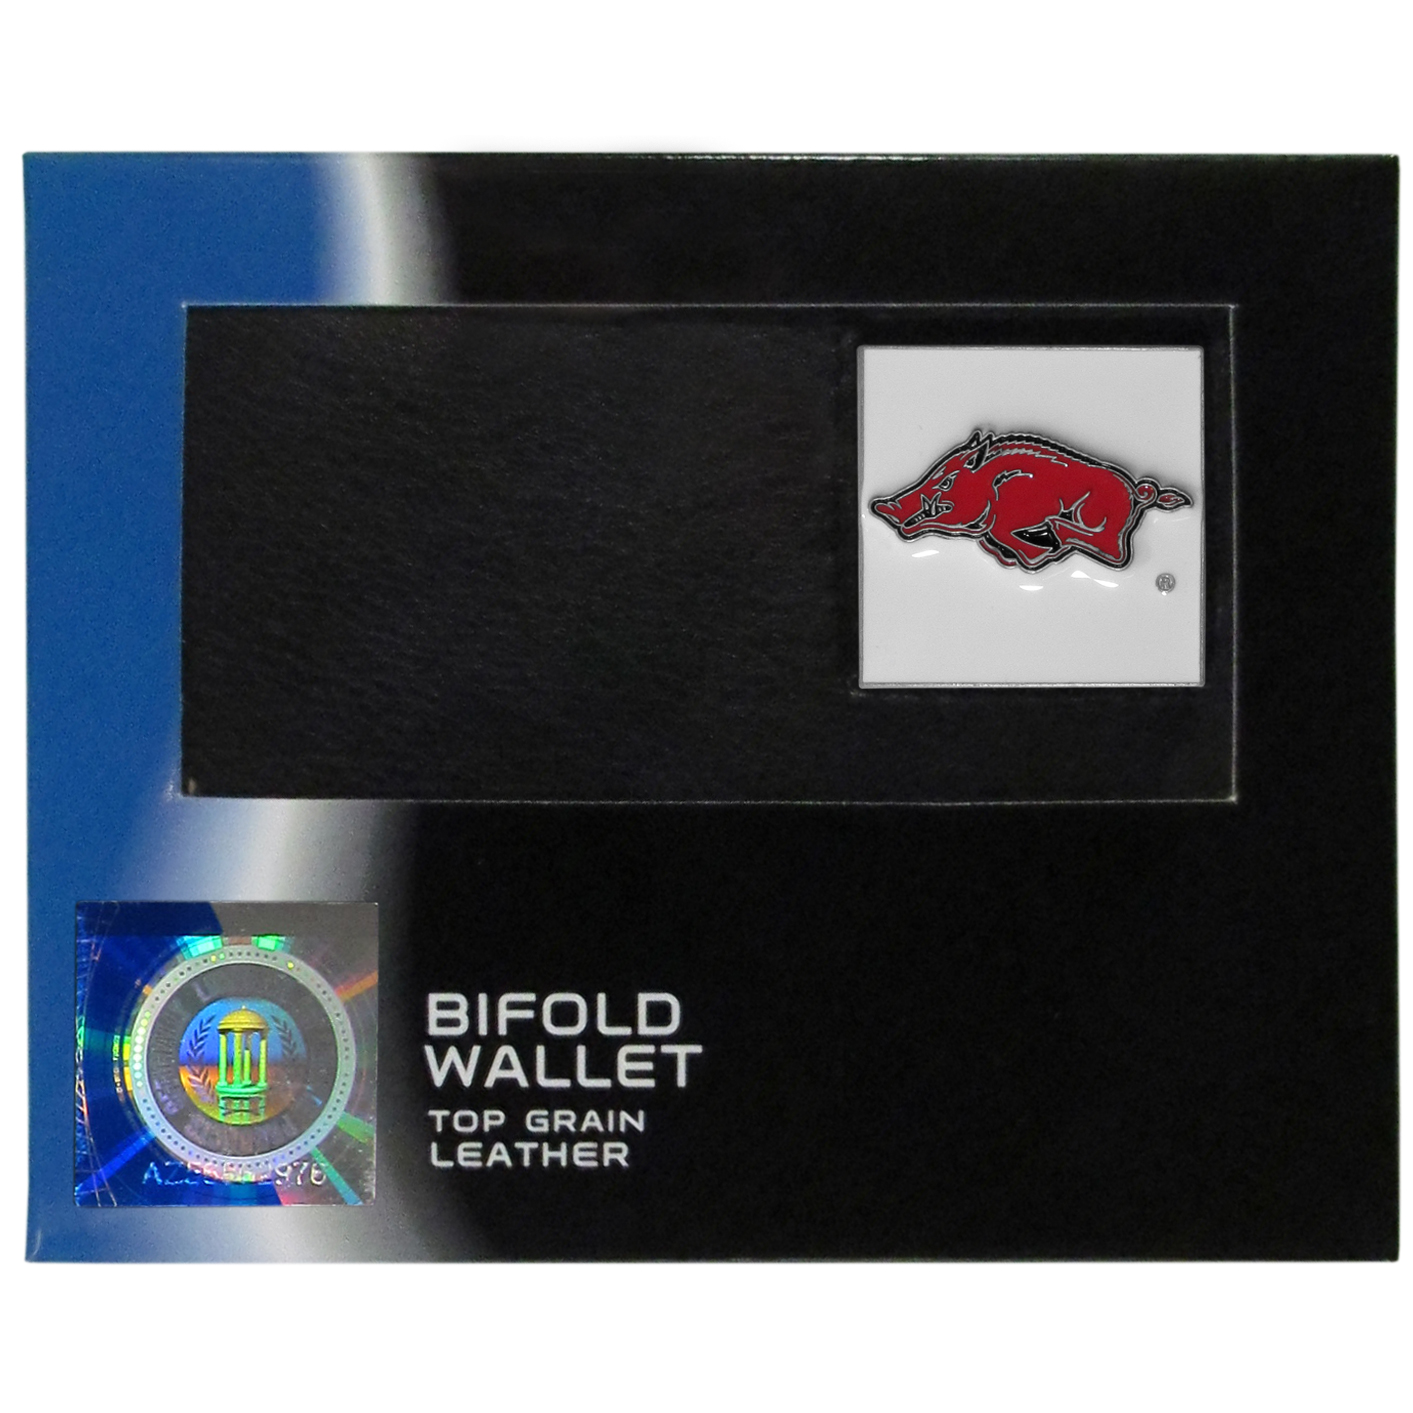 College Bi-fold Wallet Box - Arkansas Razorbacks - Our Arkansas Razorbacks college Bi-fold wallet is made of high quality fine grain leather and includes credit card slots and photo sleeves. Arkansas Razorbacks school logo is sculpted and enameled with fine detail on the front panel. Packaged in a window box. Thank you for shopping with CrazedOutSports.com